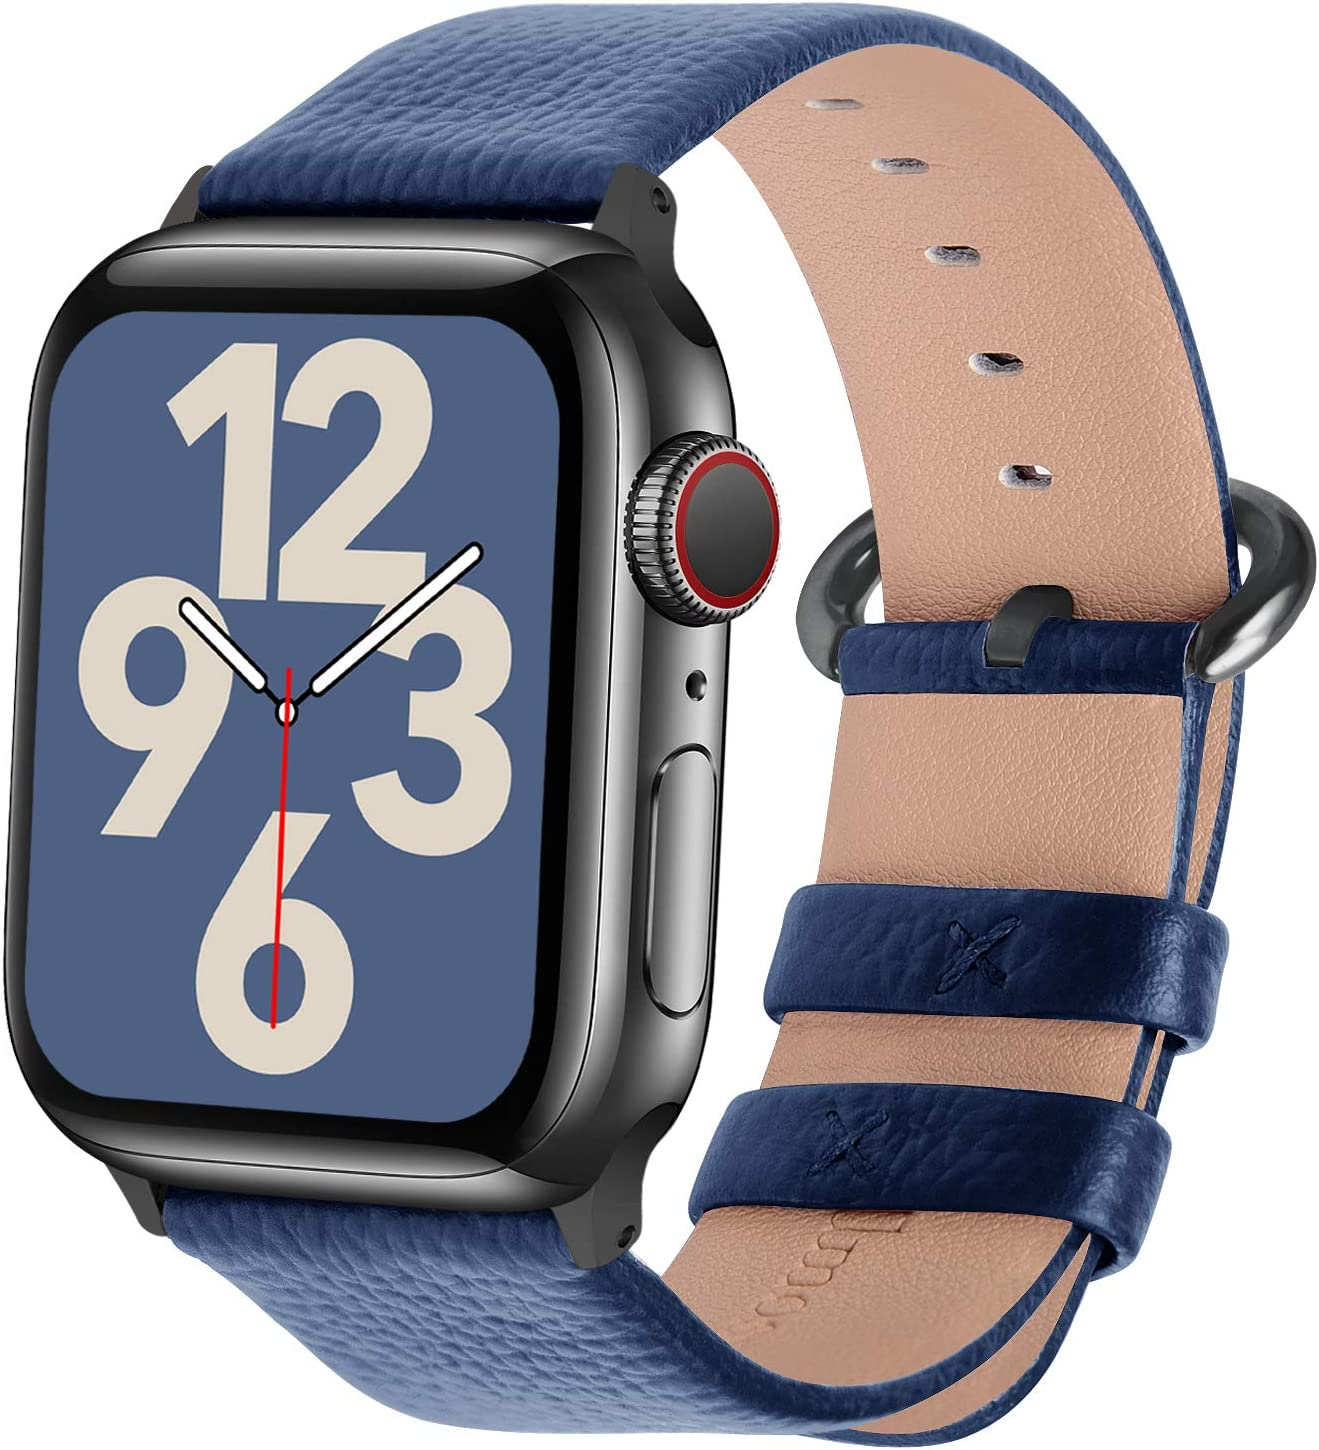 Fullmosa Compatible Apple Watch Band 38mm 40mm 42mm 44mm Leather Compatible iWatch Band/Strap Compatible Apple Watch SE & Series 6 5 4 3 2 1, 38mm 40mm Dark Blue + Smoky Grey Buckle